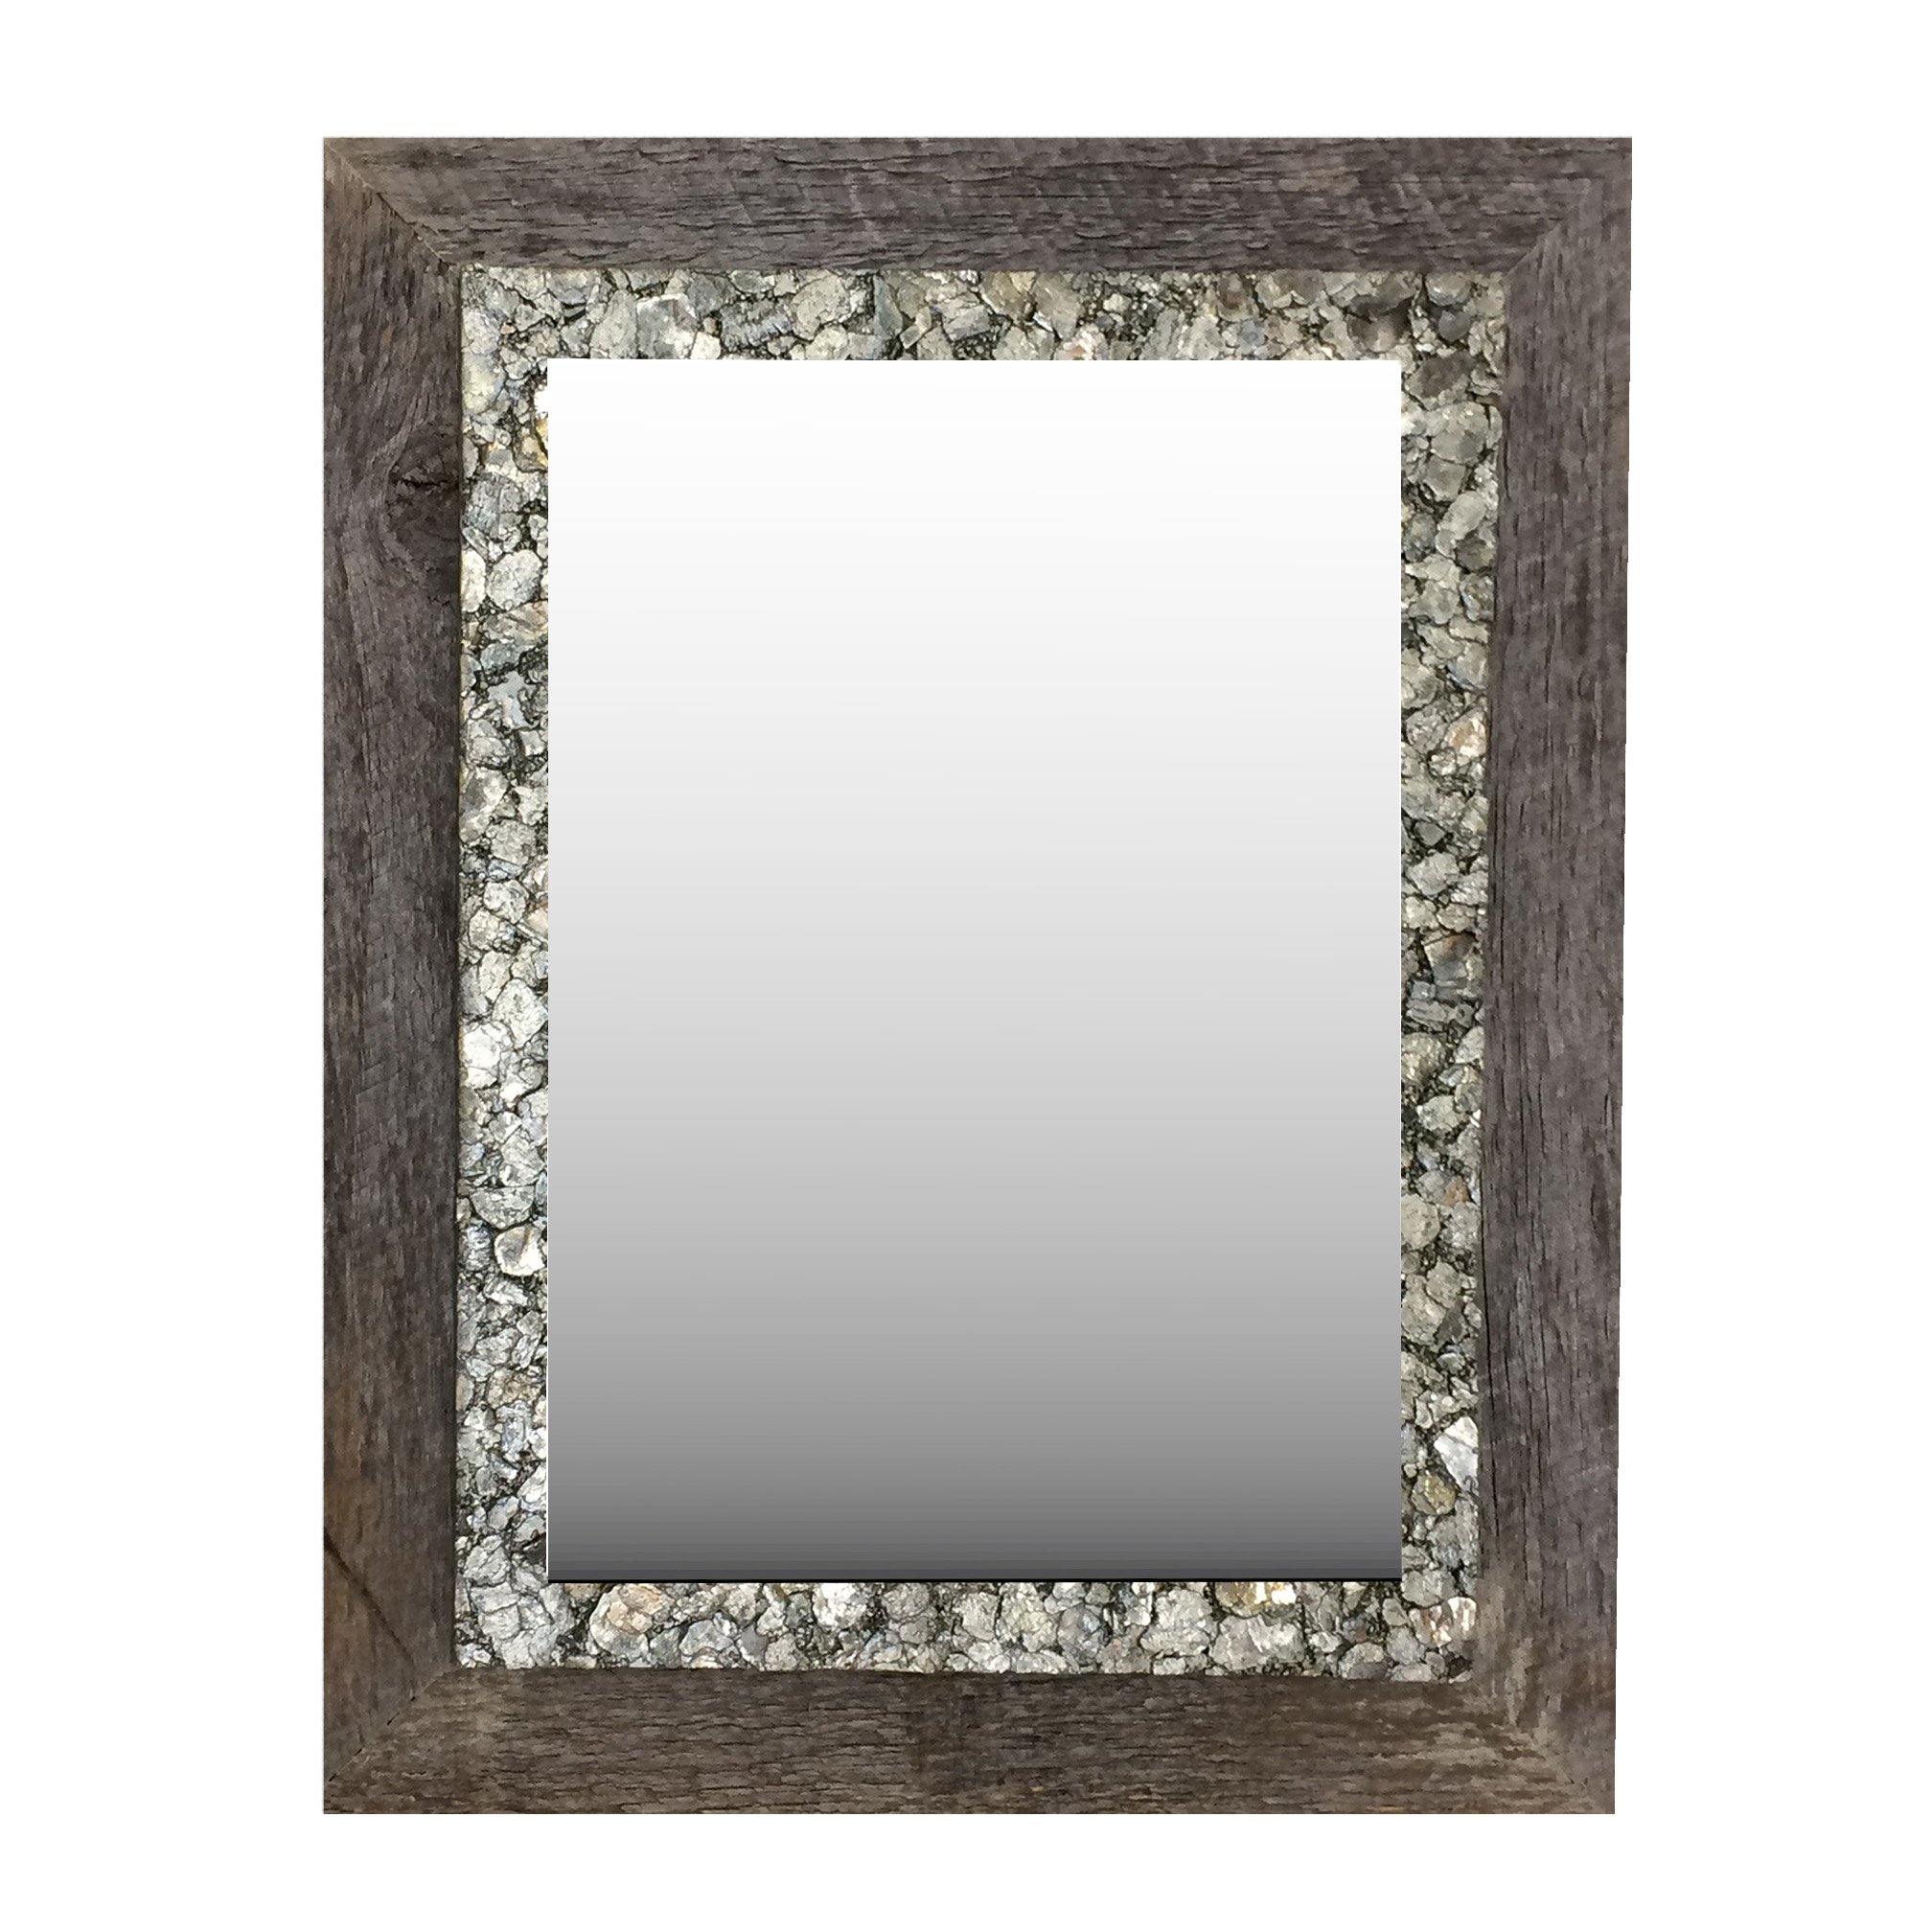 Barnwood Mirror with Rock Border